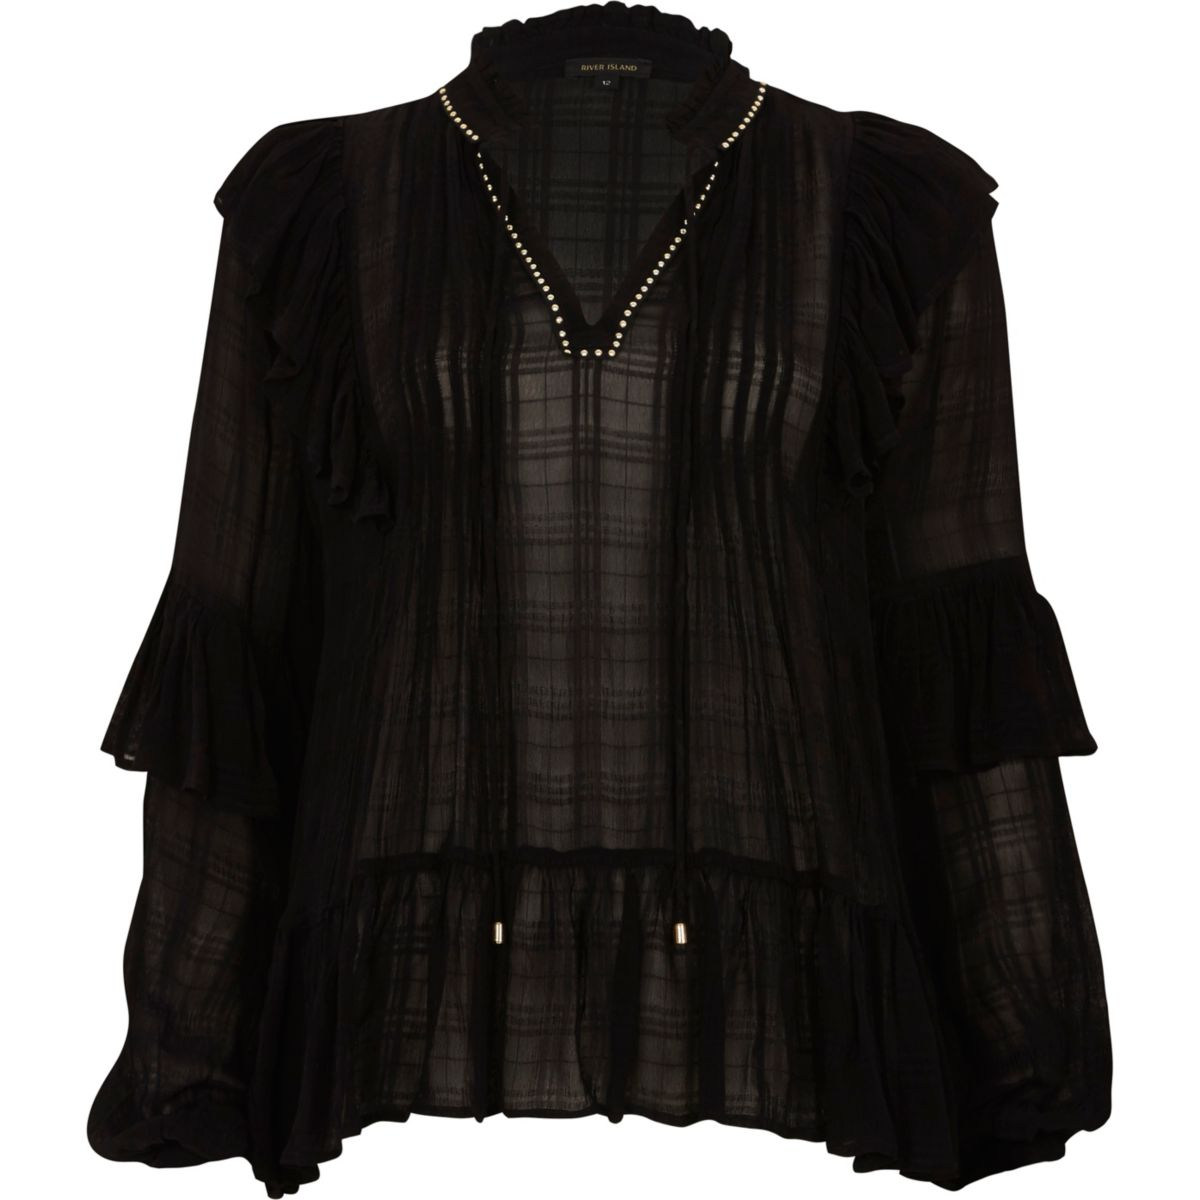 Black check sheer tie neck frill smock top